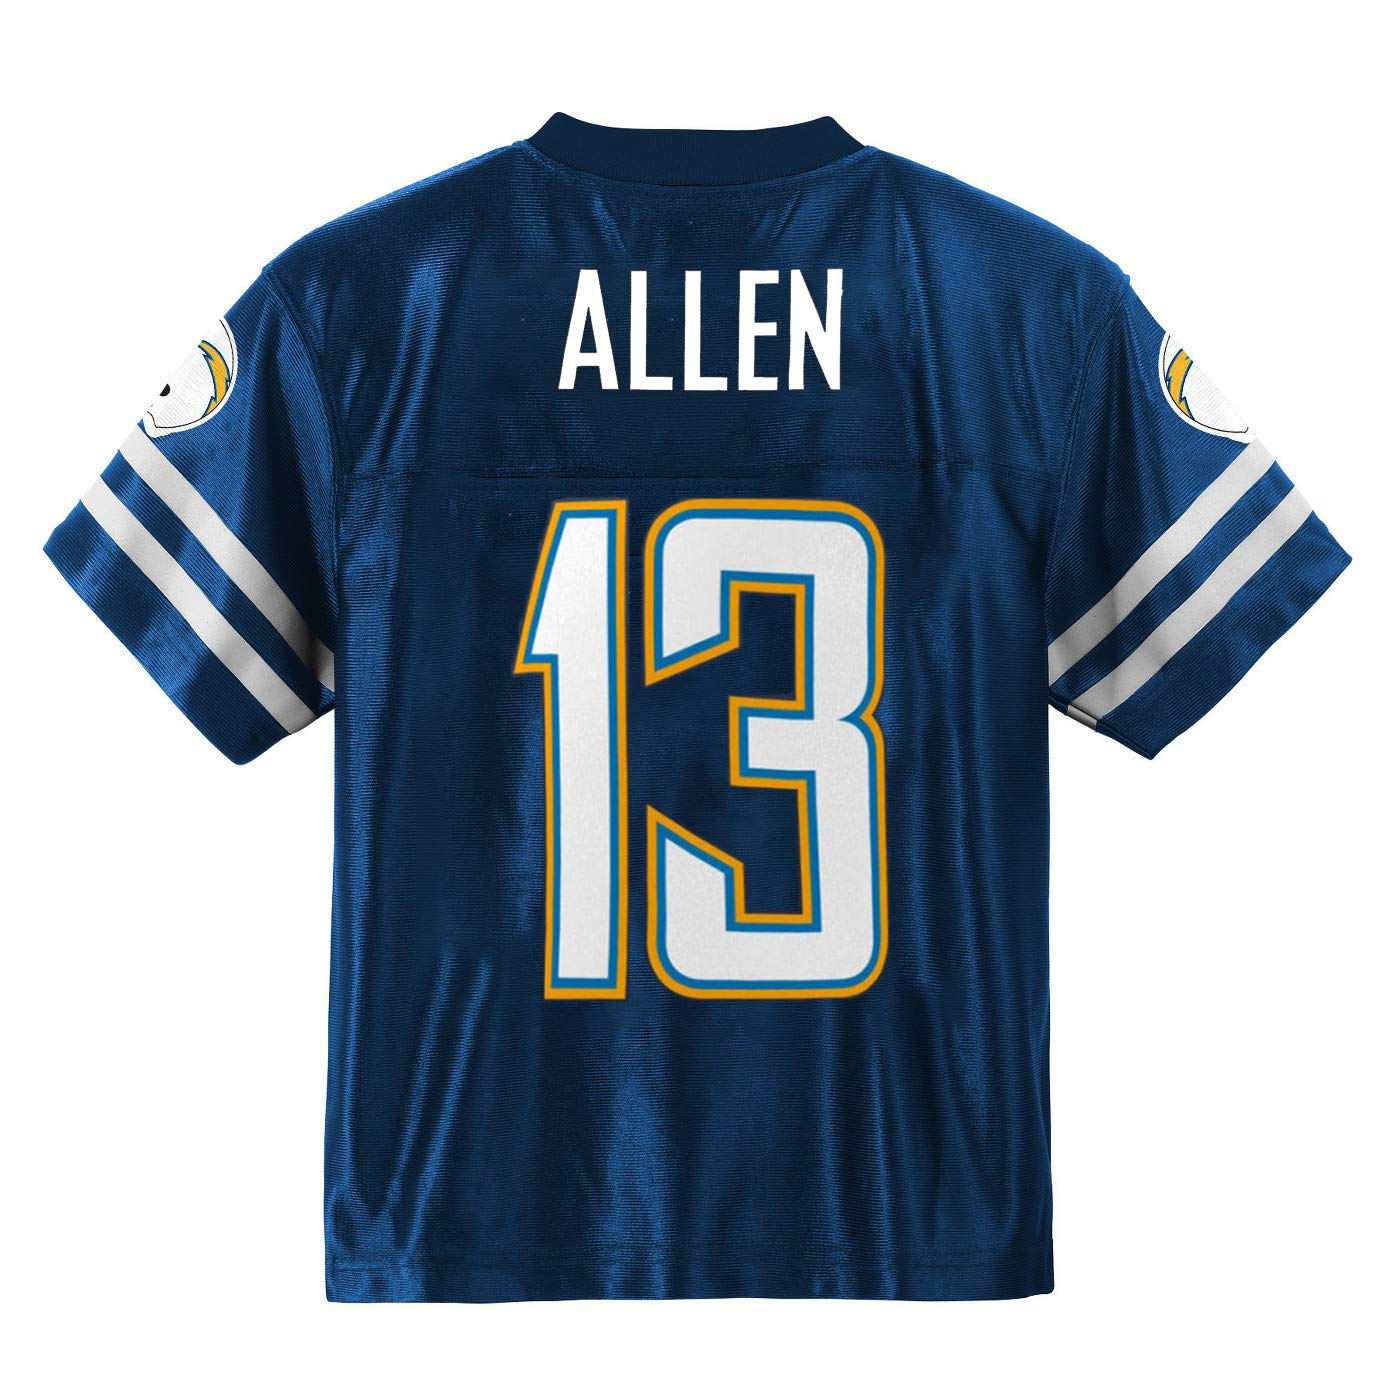 new arrival cb3a1 e867d Amazon.com : Outerstuff Keenan Allen Los Angeles Chargers ...